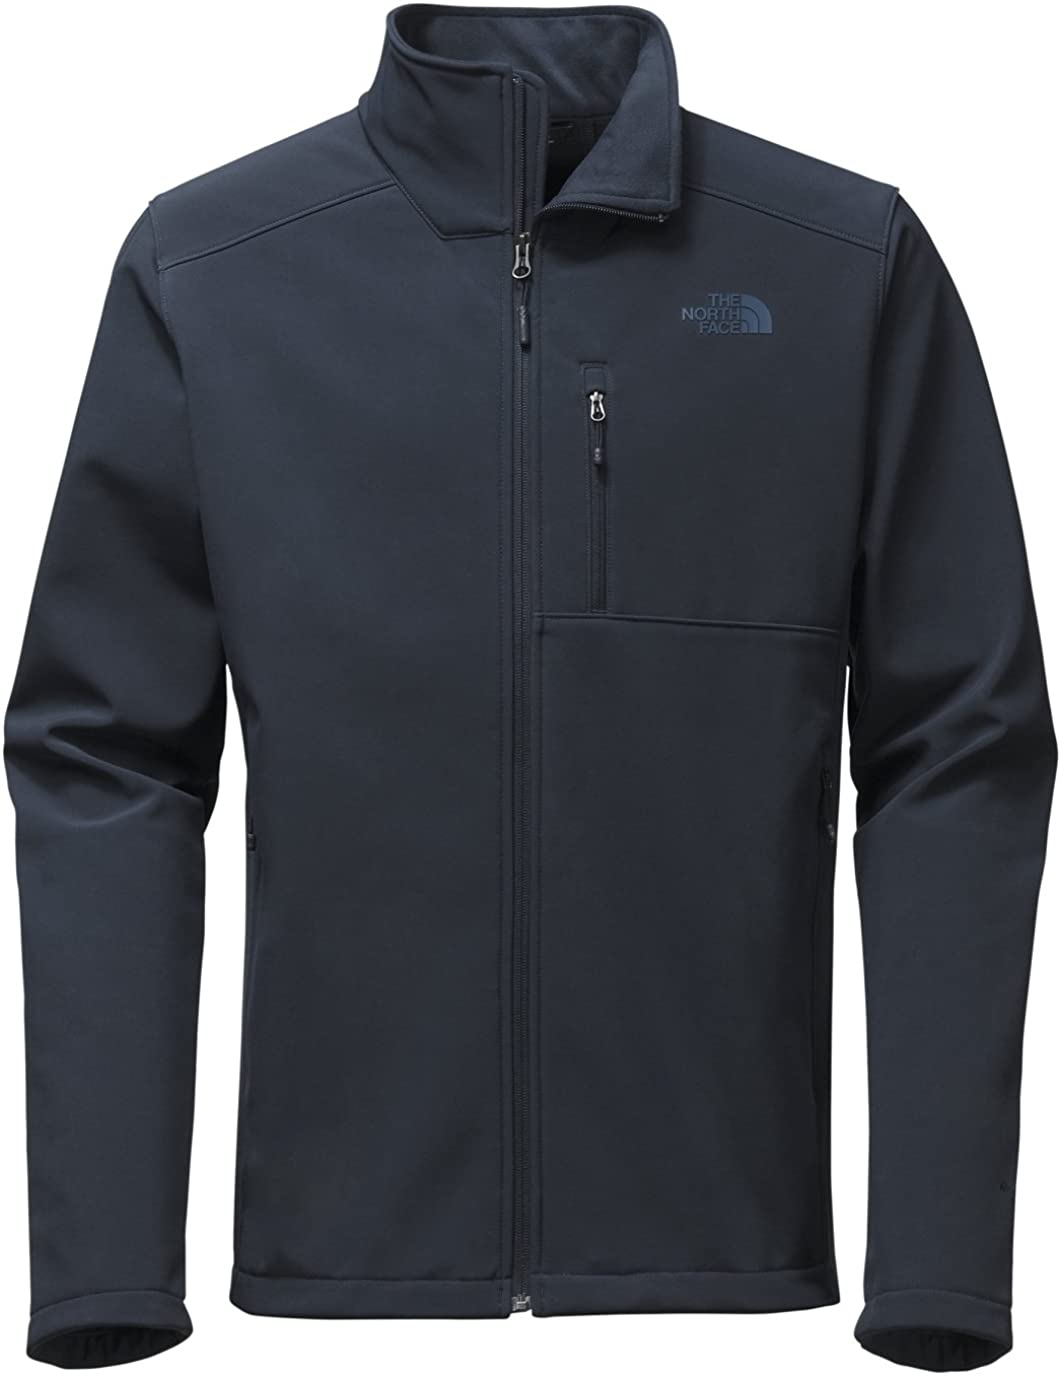 The North Face Men's Apex Bionic 2 Jacket - Tall